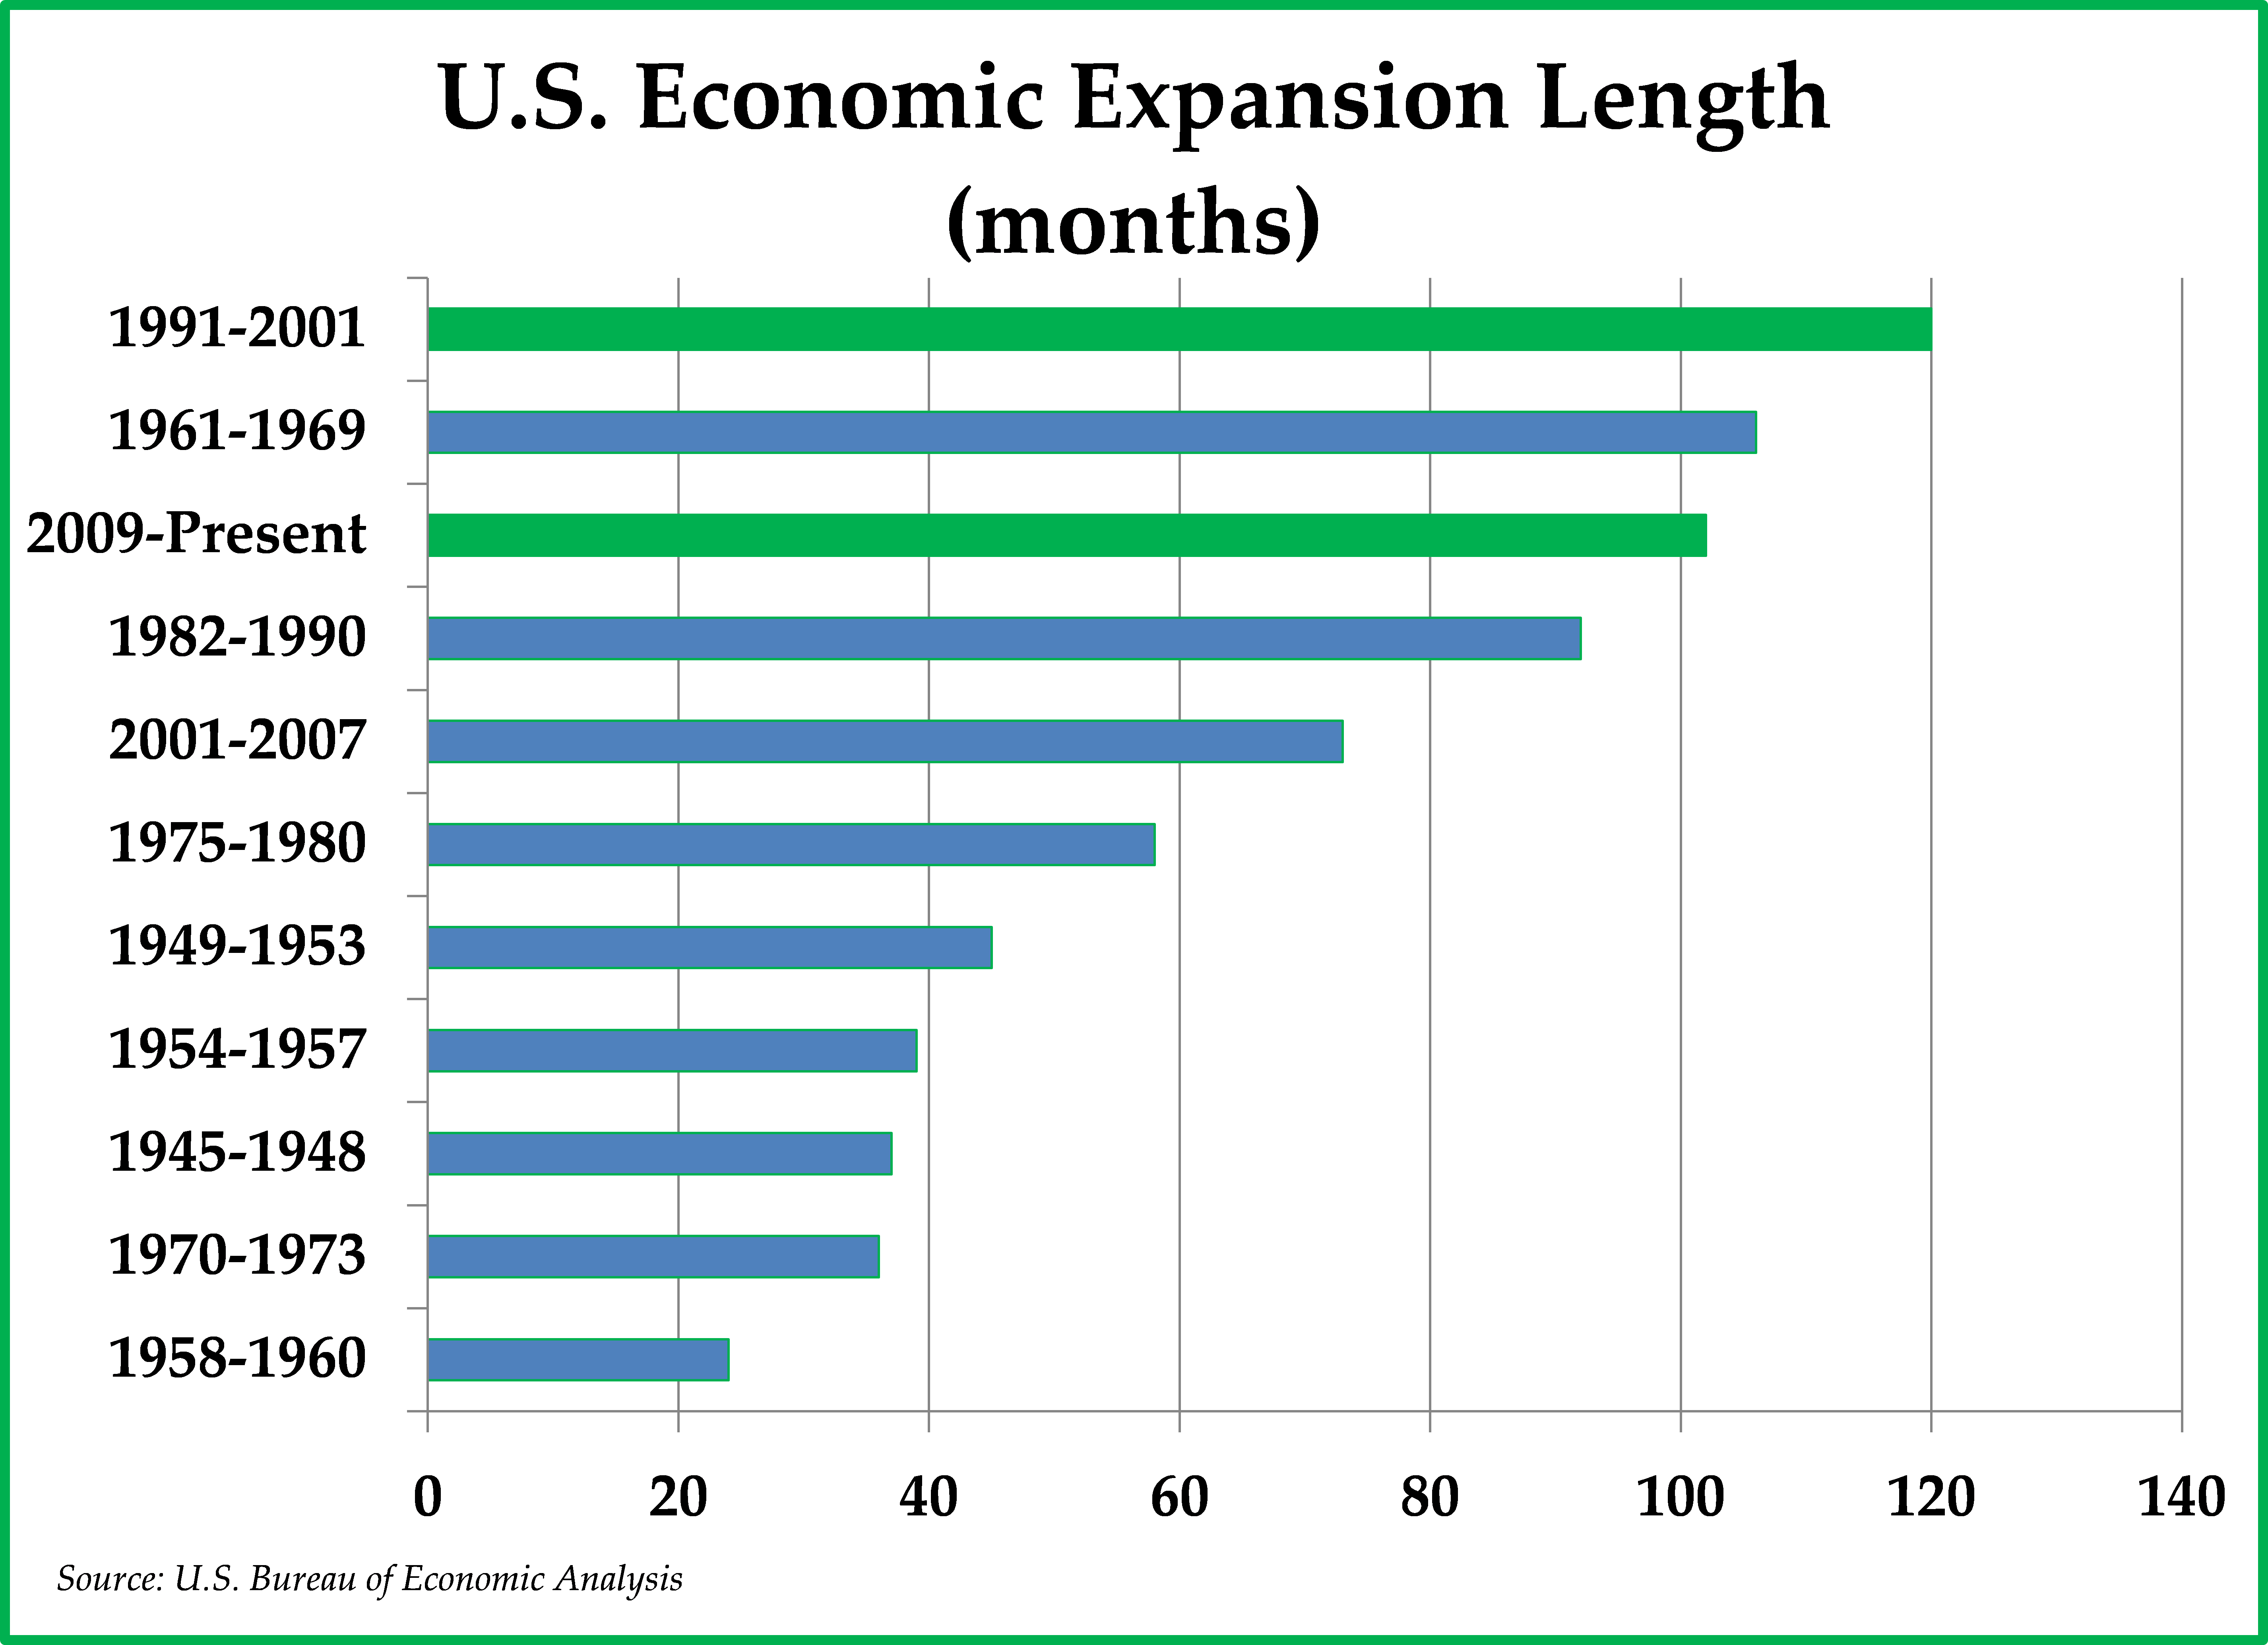 economic expansion 1991 2001 As the economy expanded so did the country's external debt as companies started borrowing from the overseas markets to fund their growth in 1991, the country's external debt stood at $838 billion.